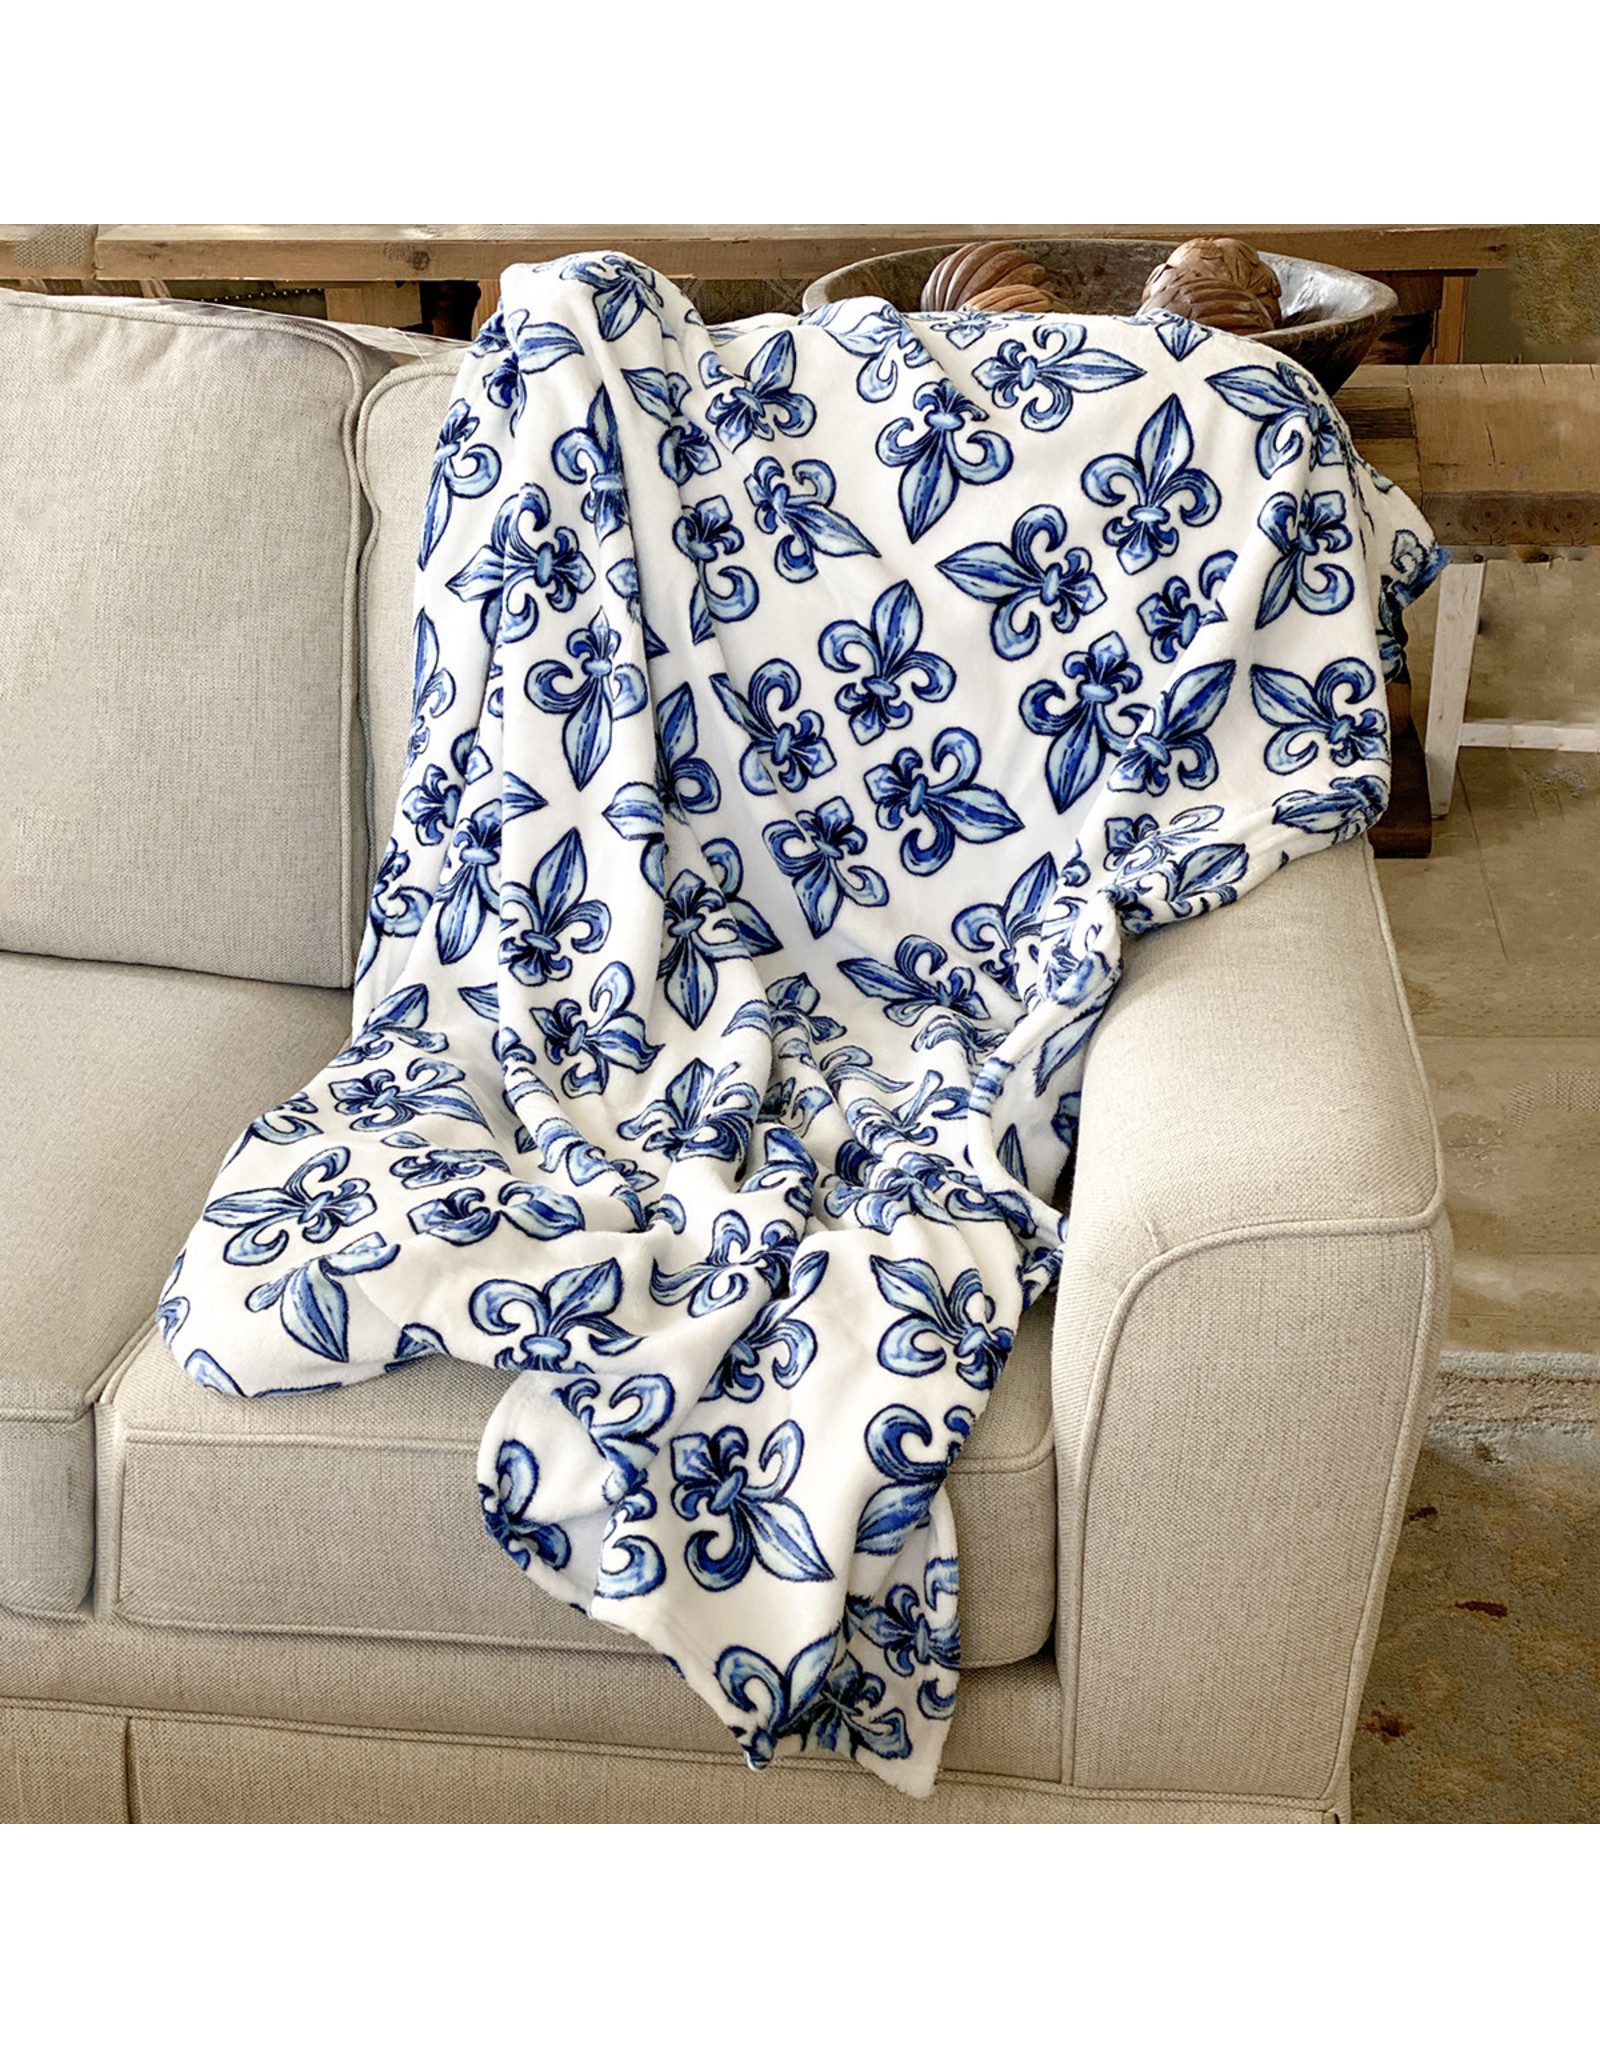 Fleur De Lis Throw / Blue & White